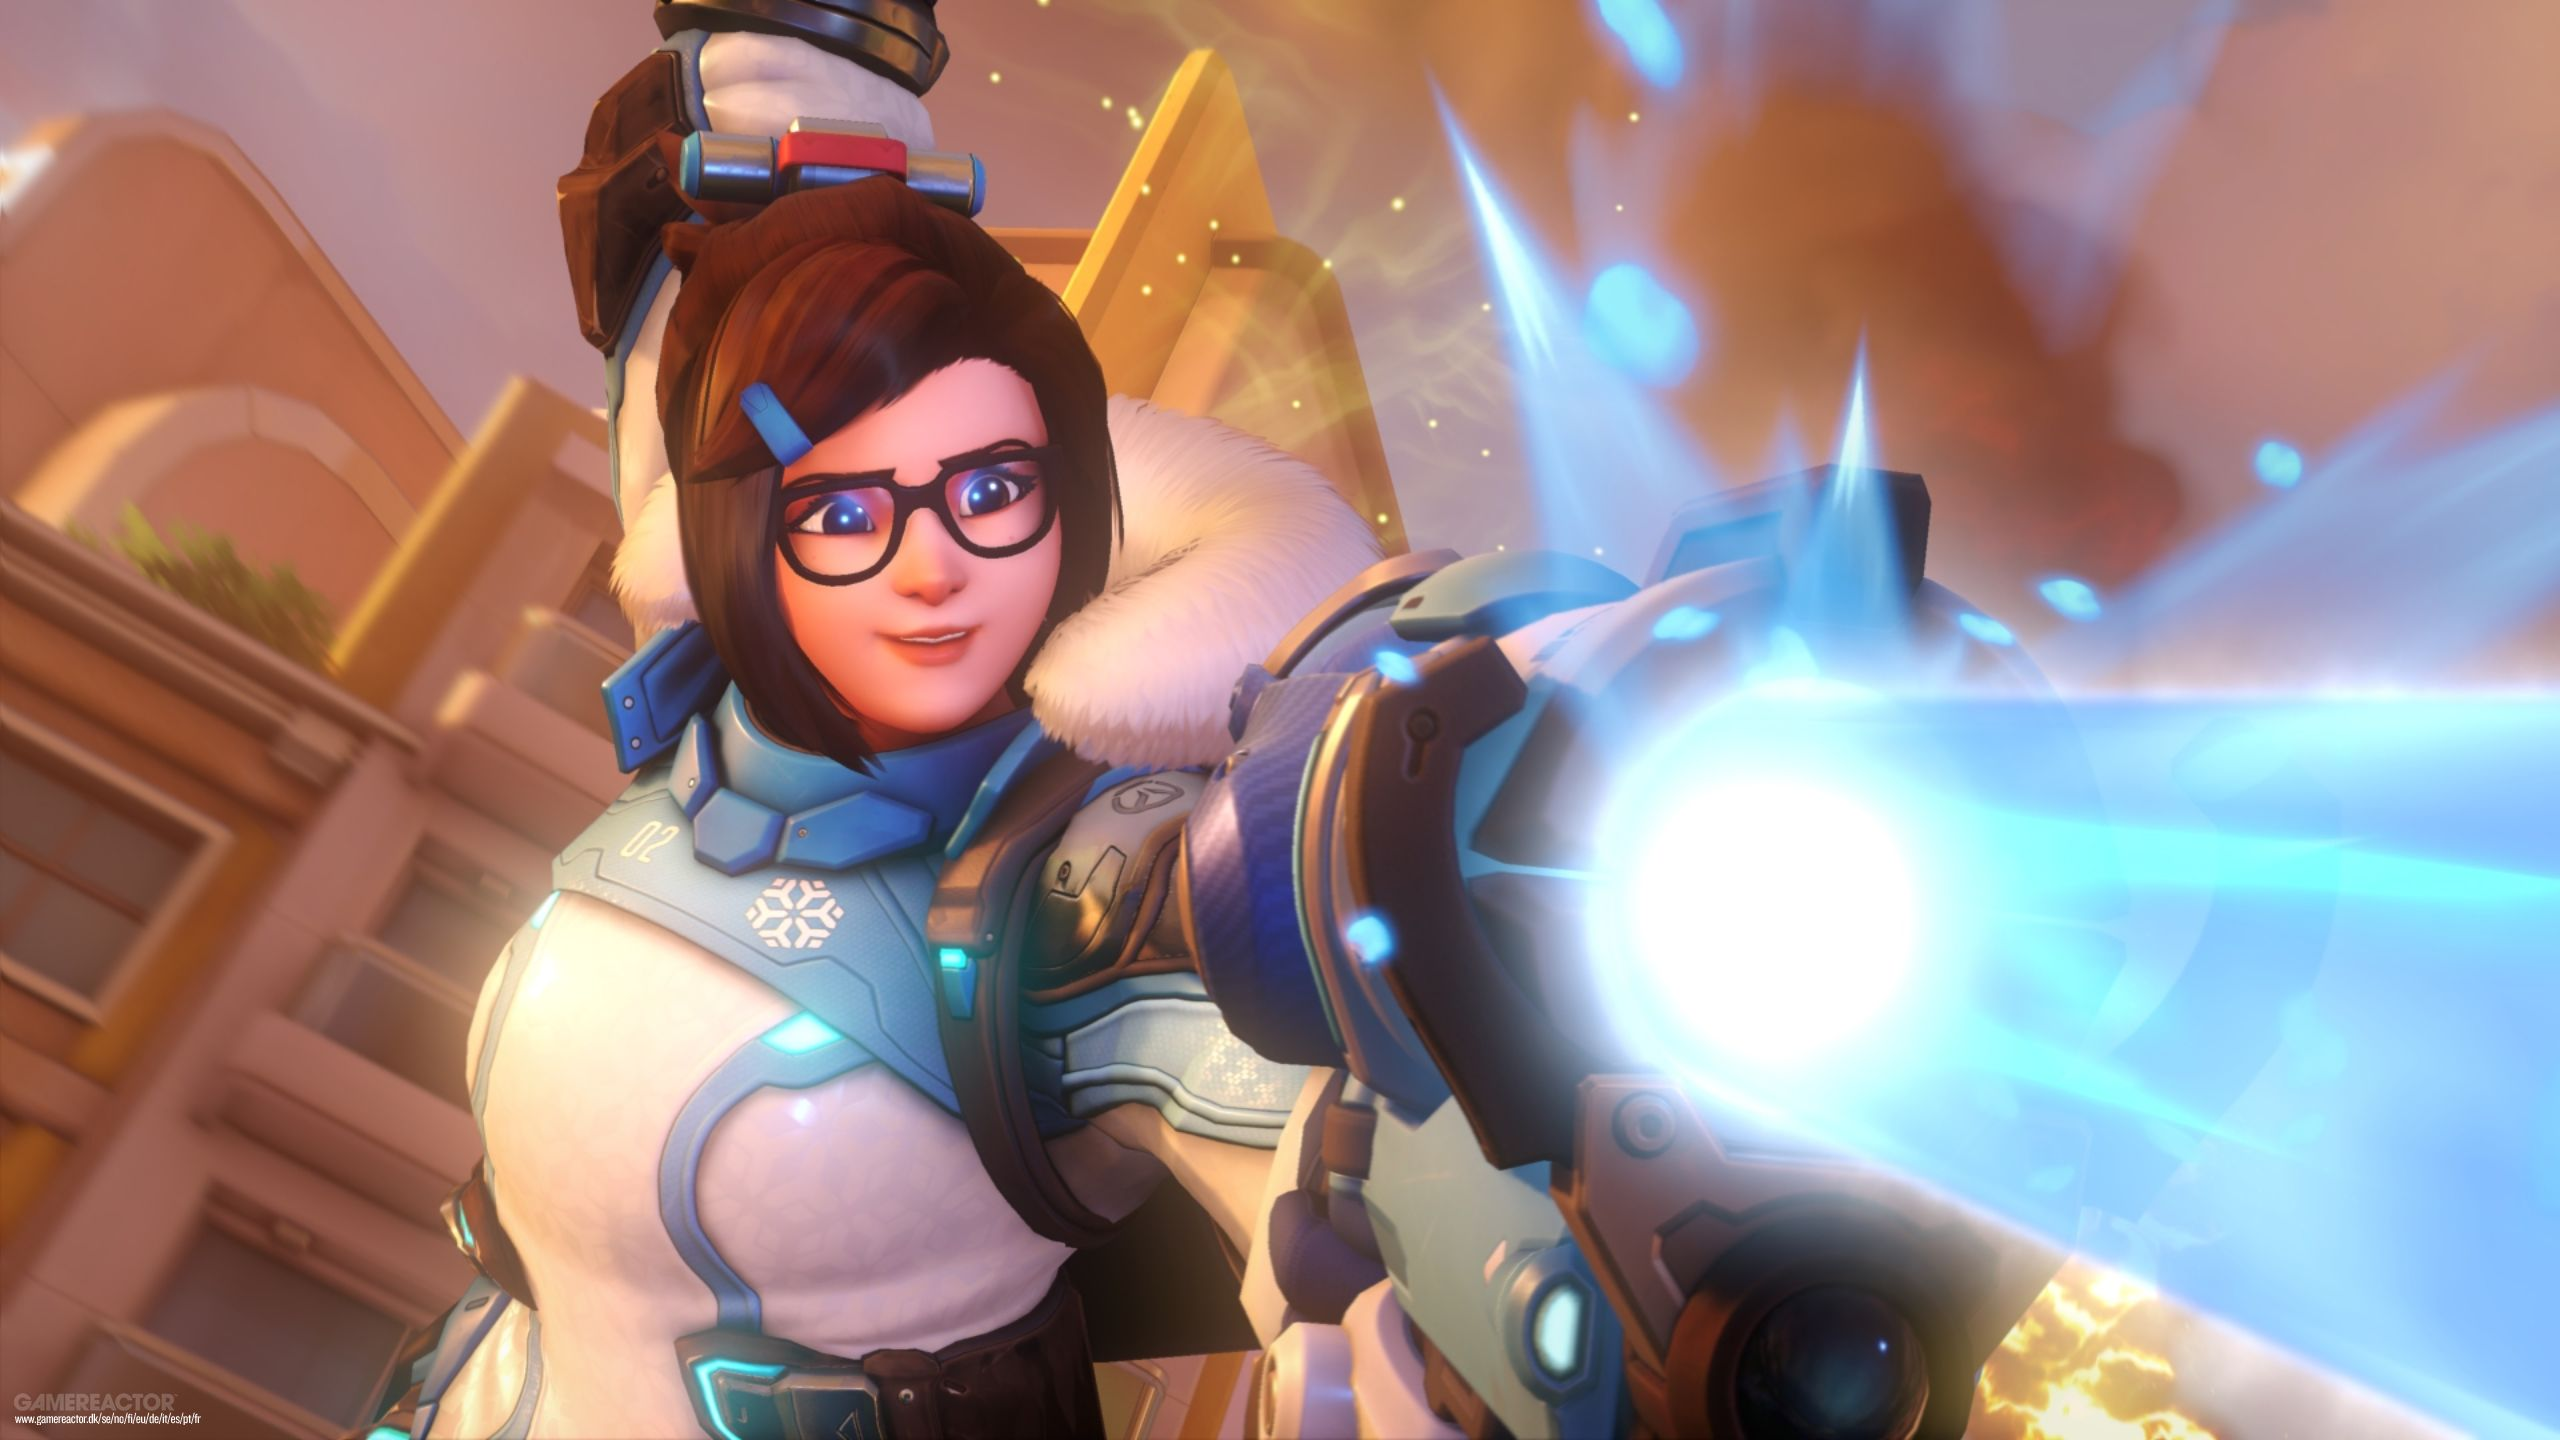 Heroes Of The Storm Enlists Overwatch S Mei As Its Next Hero Within these pages, you will find everything required to understand how best to play this hero, in both different map styles and. heroes of the storm enlists overwatch s